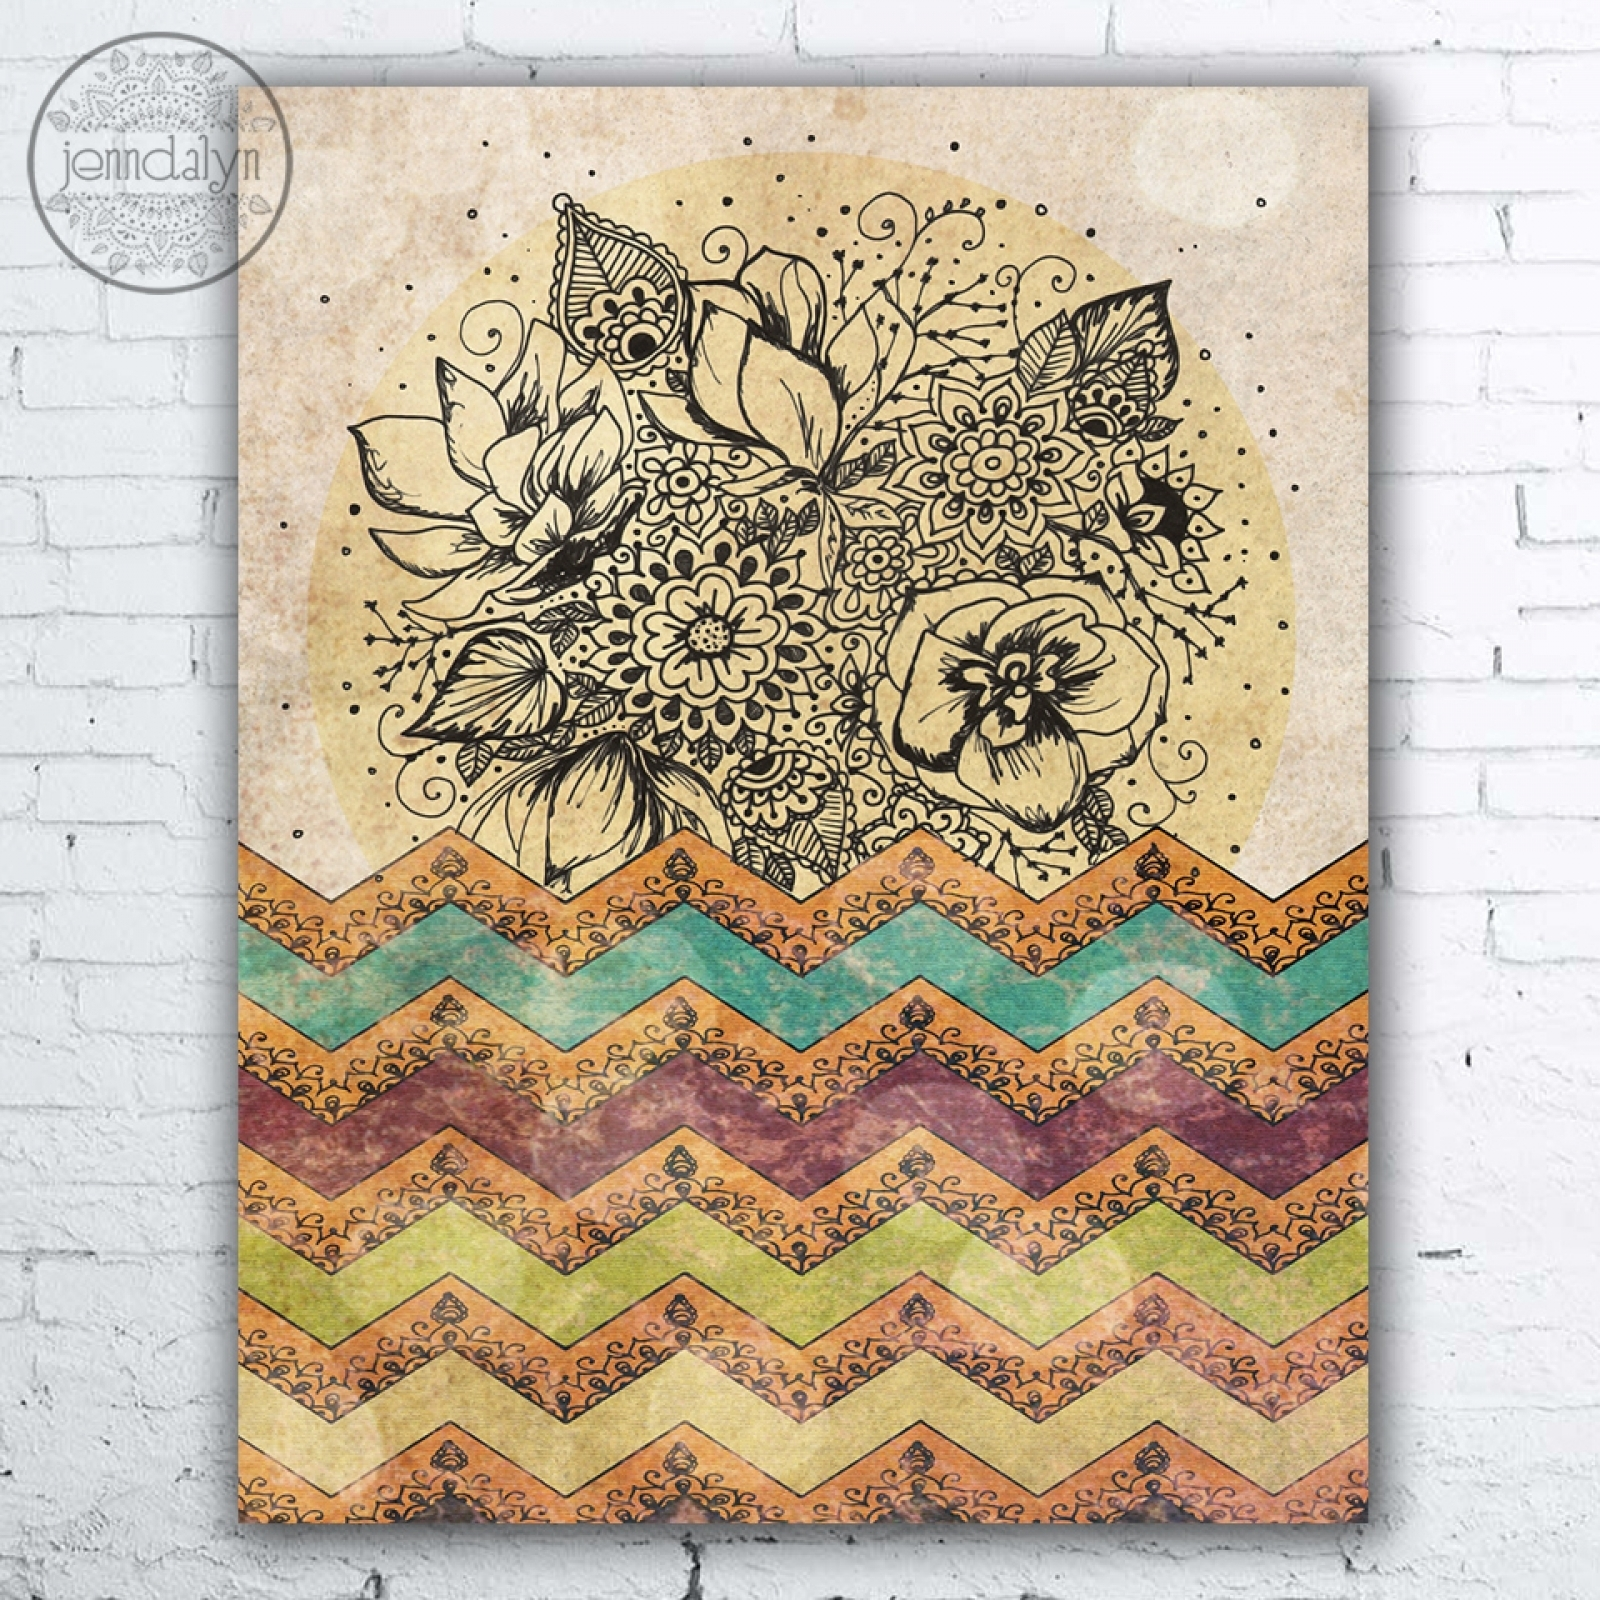 The Incredible Journey | Jenndalyn Intended For Most Up To Date Bohemian Wall Art (View 2 of 20)